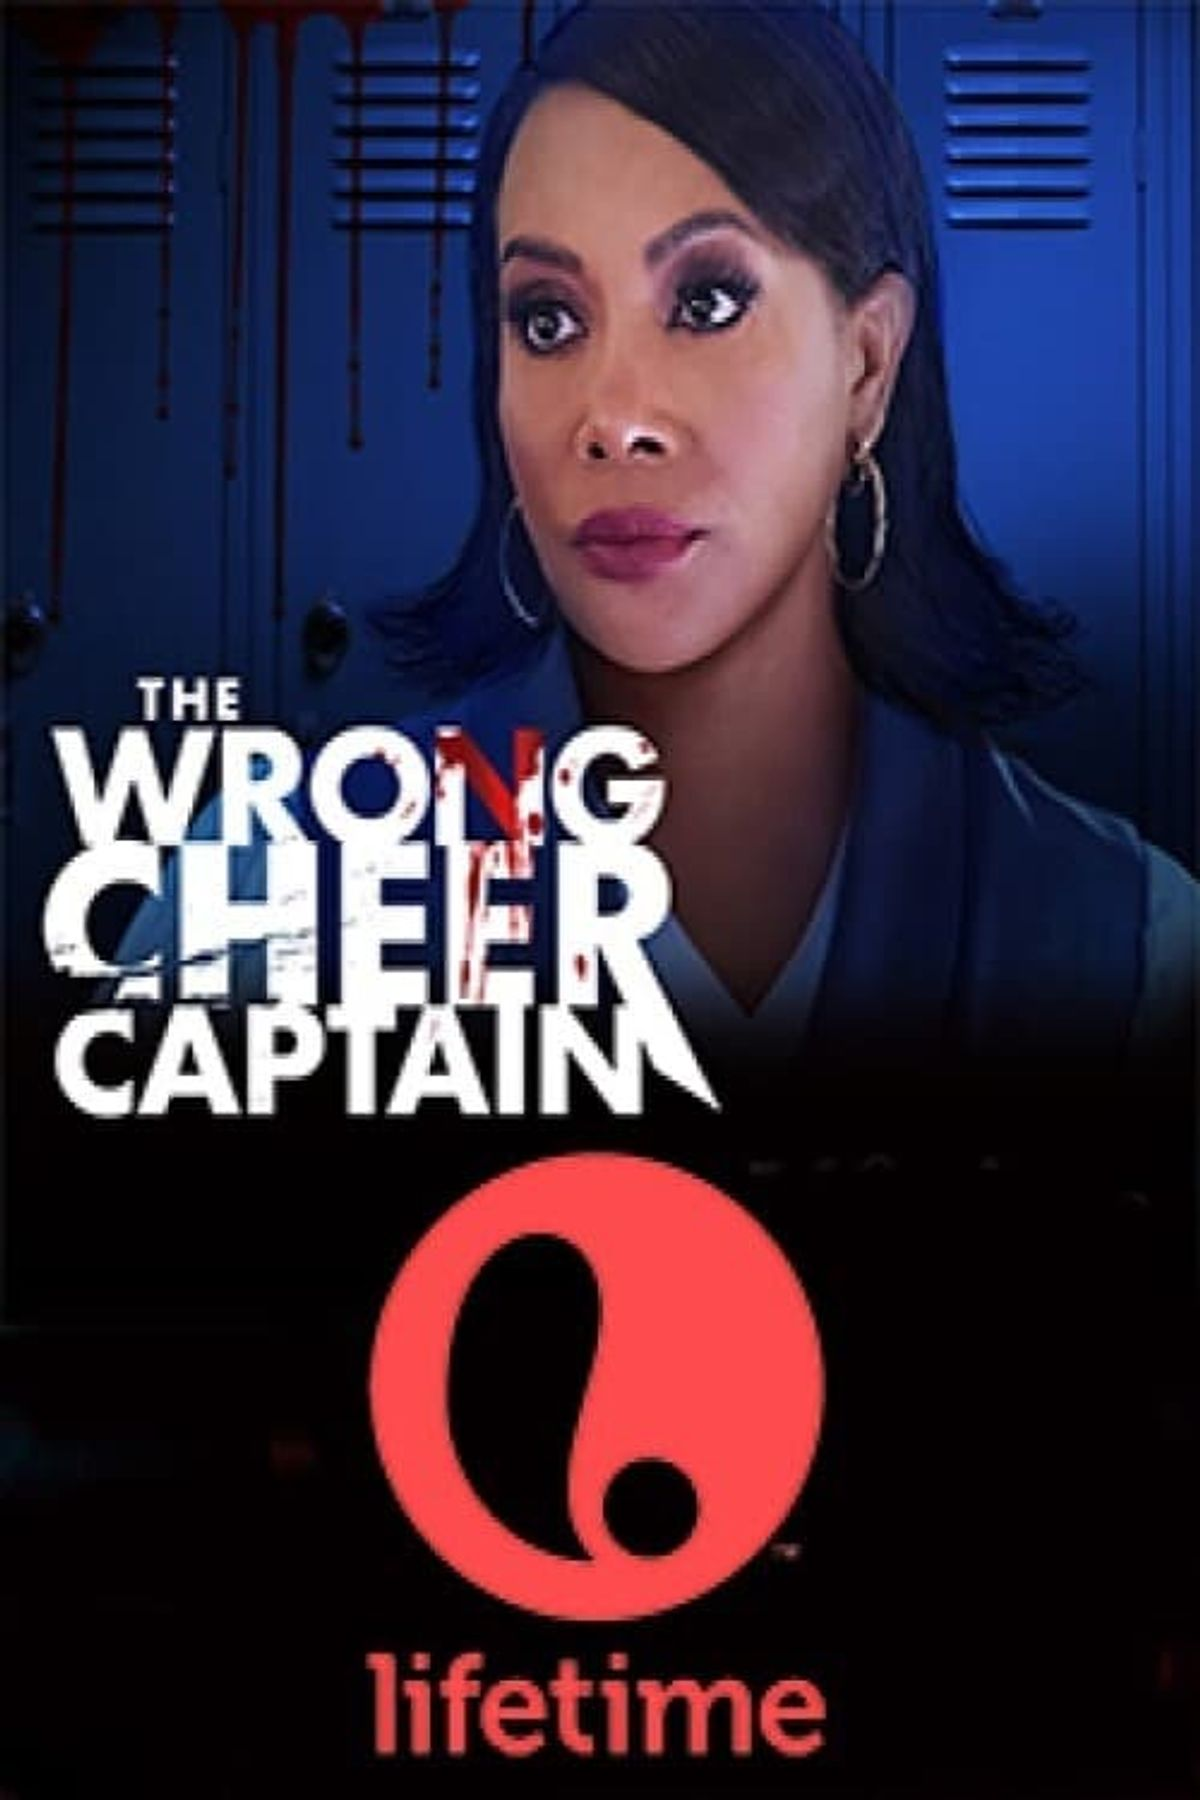 The Wrong Cheer Captain